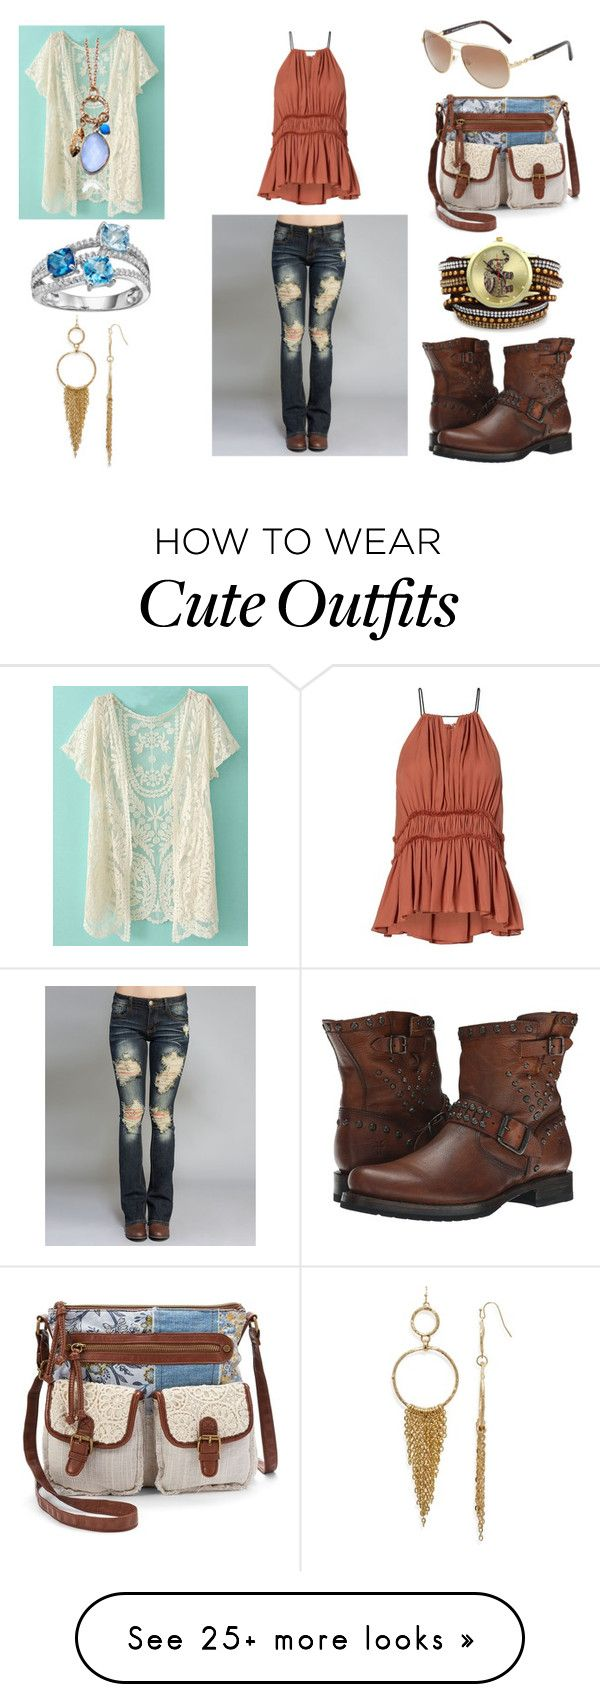 """""""Cute School Outfit"""" by holly32196 on Polyvore featuring Wet Seal, Mudd, Frye, Aqua, Argento Vivo, Michael Kors, BackToSchool, cute, outfit and chic"""